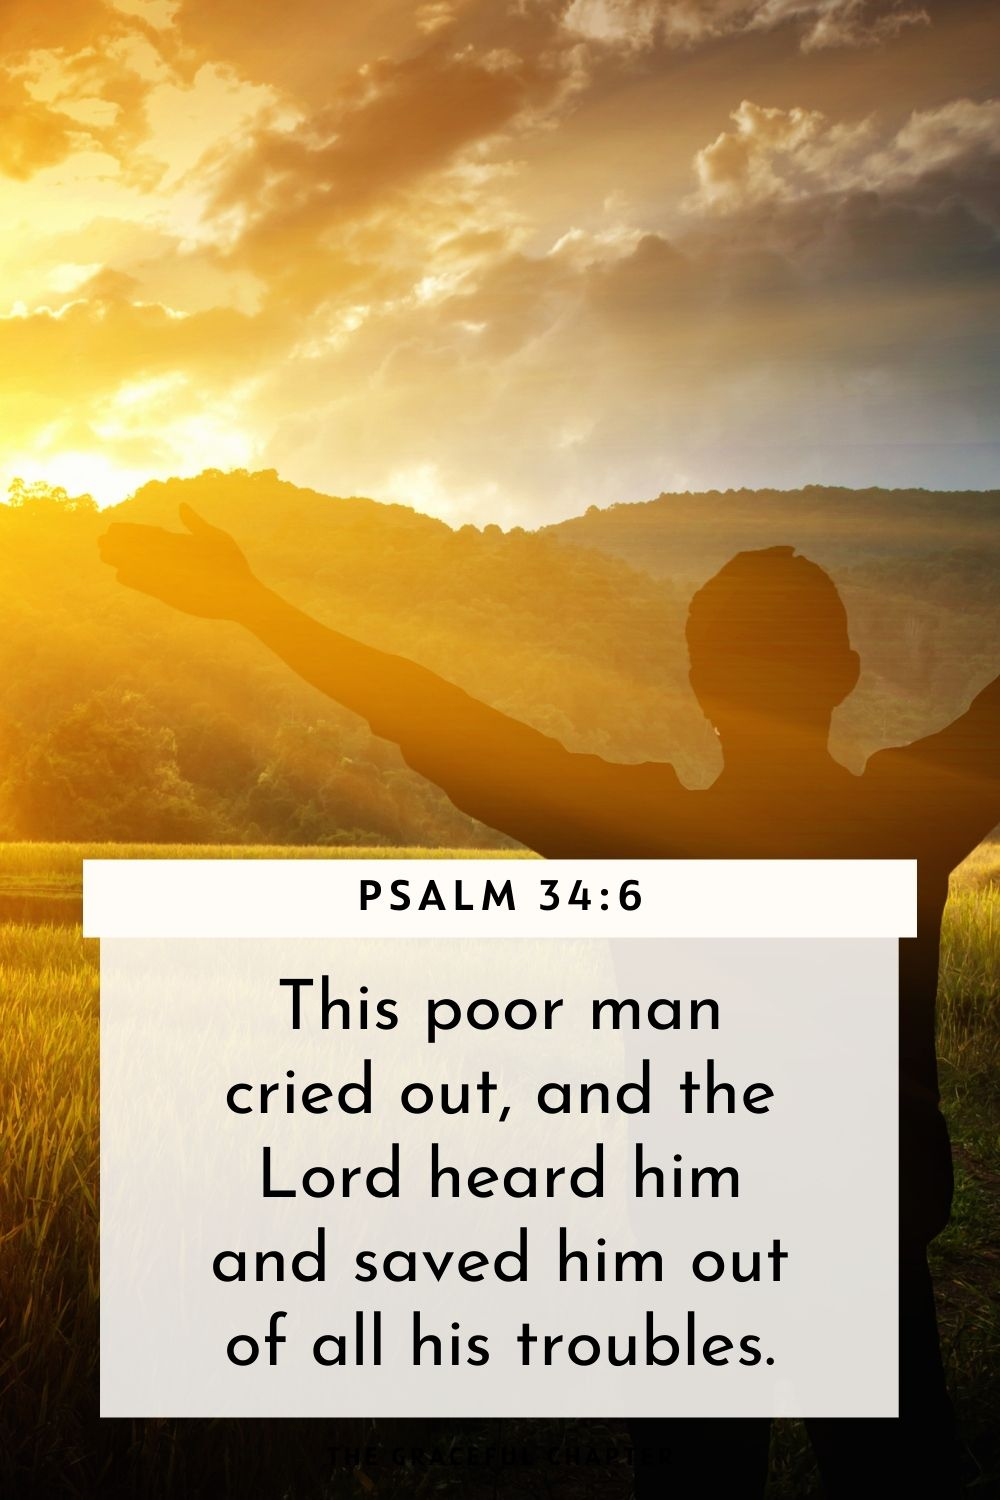 This poor man cried out, and the Lord heard him and saved him out of all his troubles. Psalm 34:6